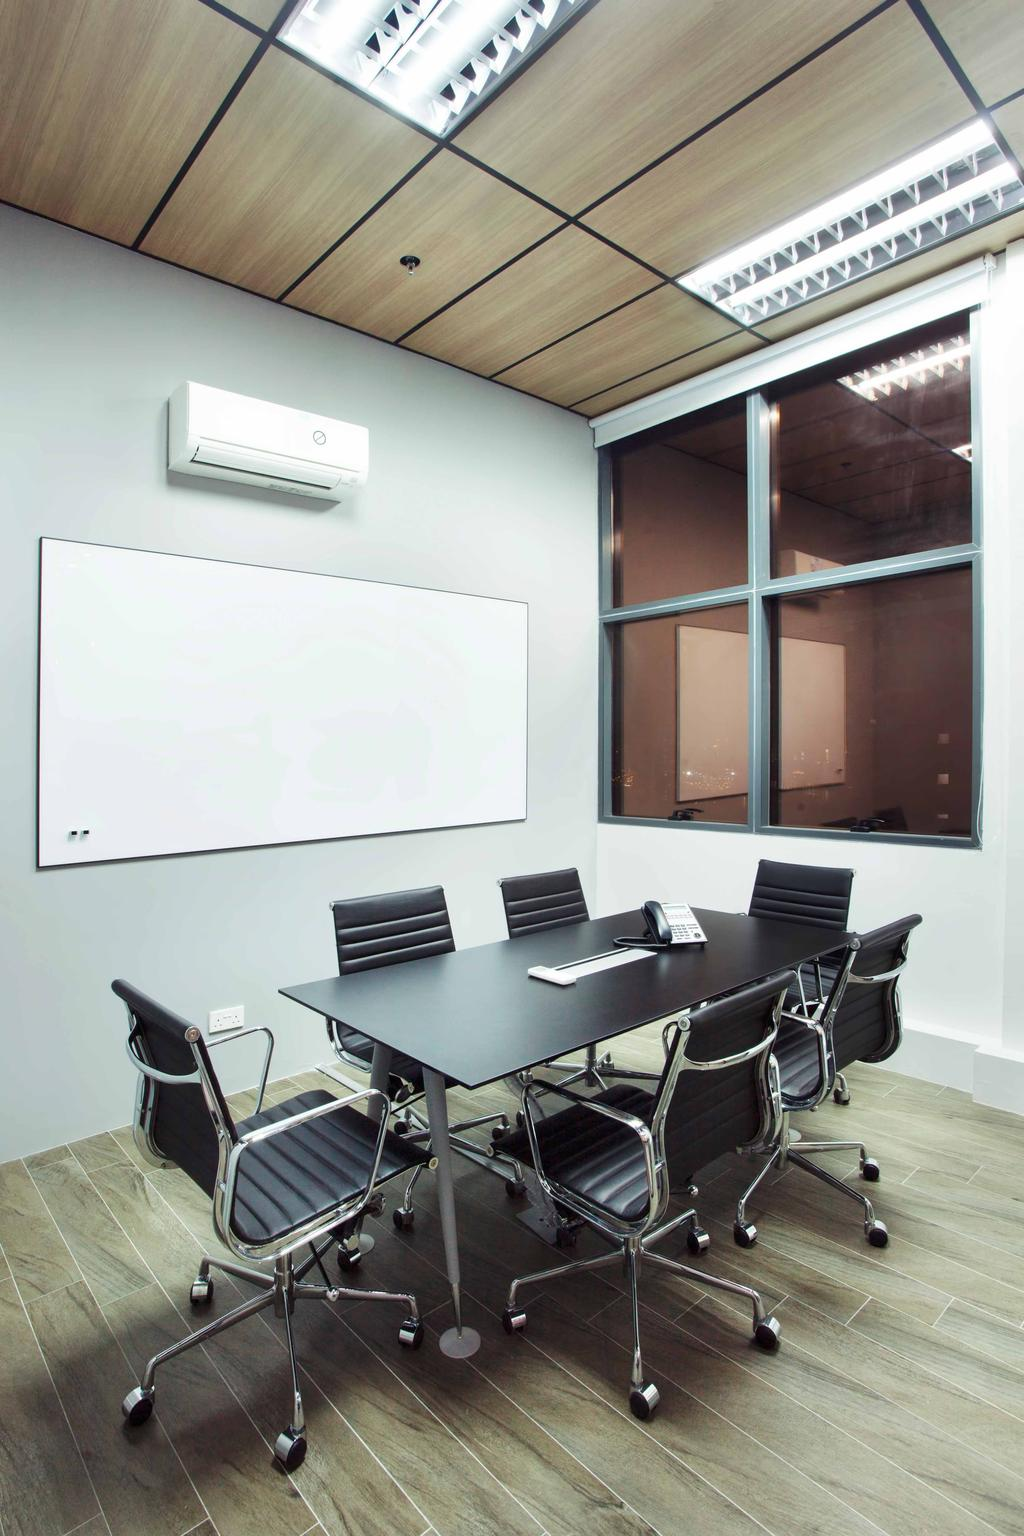 CT Hub 2 Office, Commercial, Interior Designer, Project Guru, Industrial, Eclectic, Conference Room, Indoors, Meeting Room, Room, Dining Table, Furniture, Table